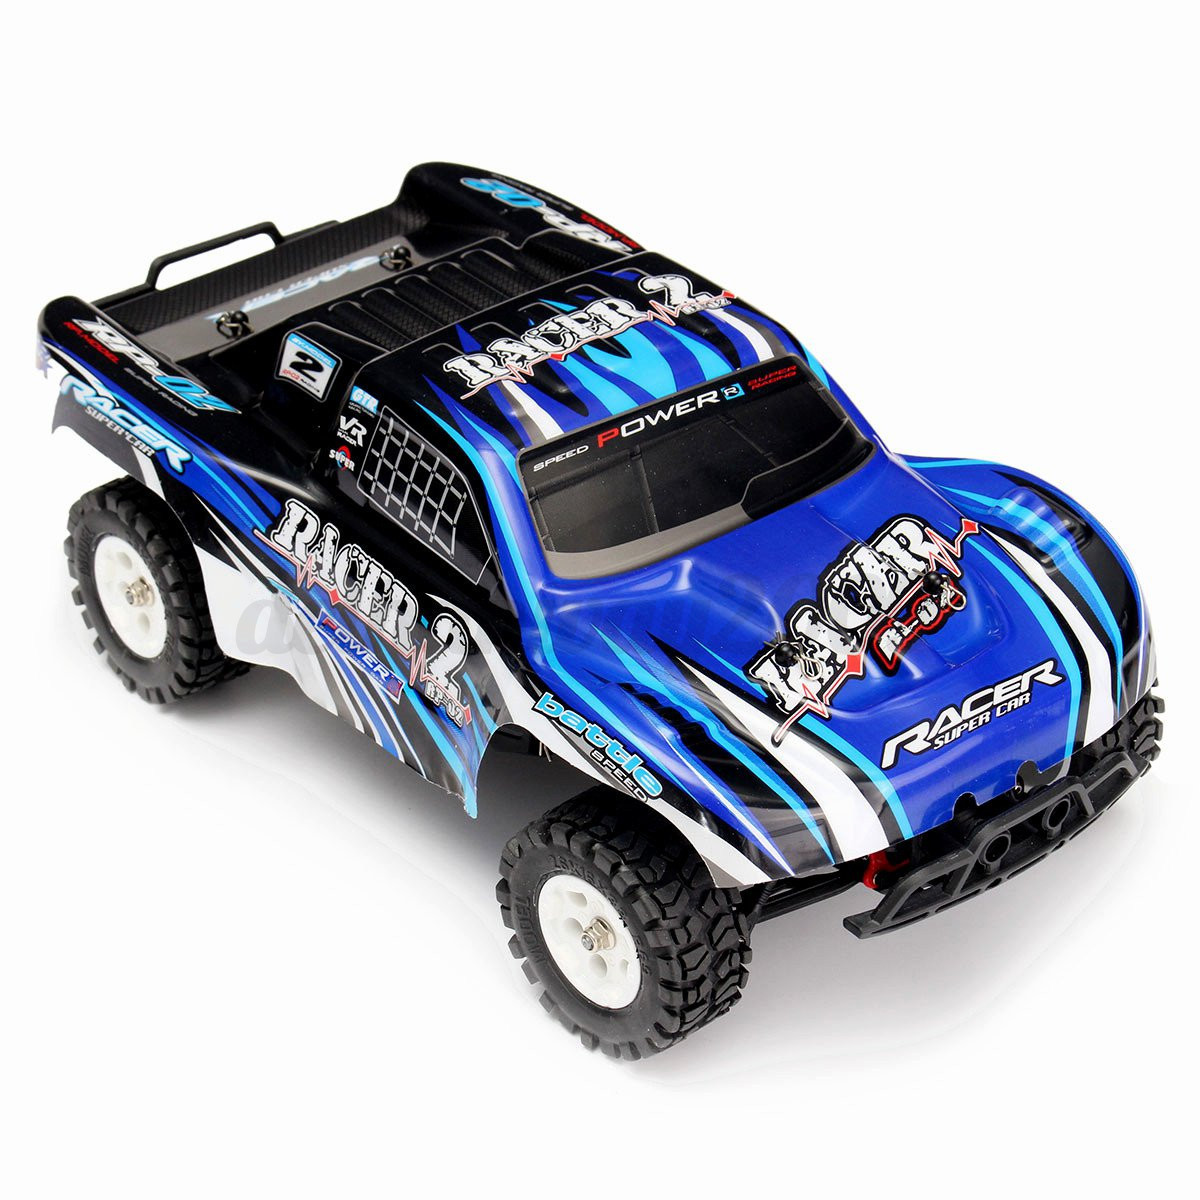 fastest radio controlled cars with 301879309667 on Traxxas Funny Car Race Replica 18 in addition Battle as well Raptor Radio Controlled Electric Truggy Brushed Version furthermore Large 1 10 Scale Steering Remote Control Enzo Ferrari Model Toy Car likewise Newrtrexrcwi.